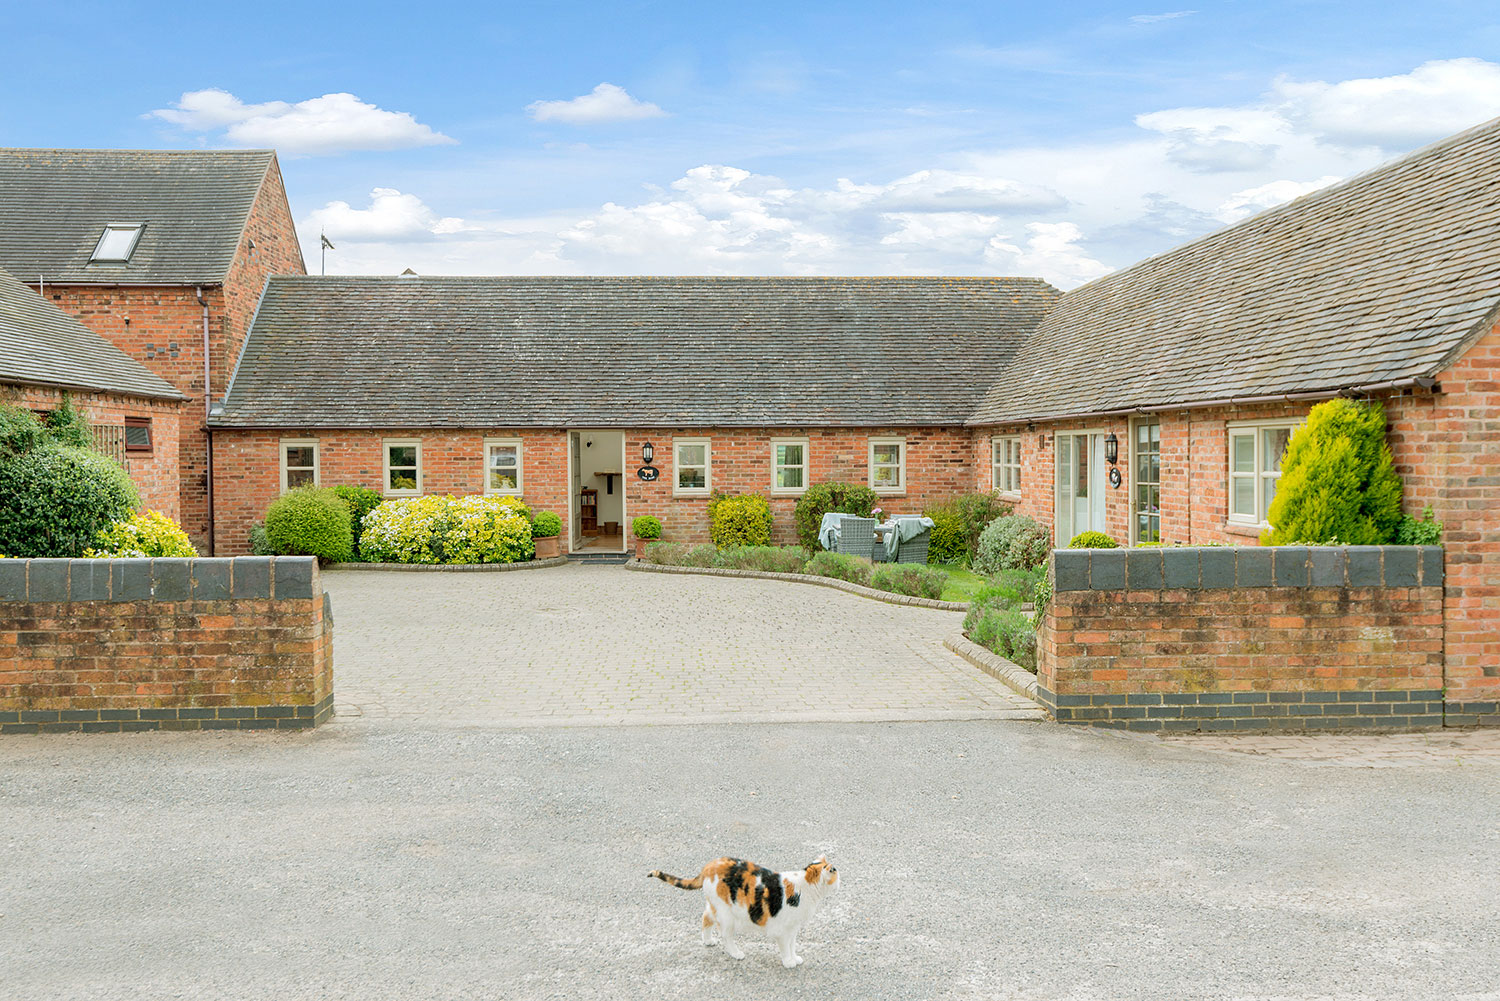 Collection of self-catering cottages in the heart of England | Upper Rectory Farm Cottages